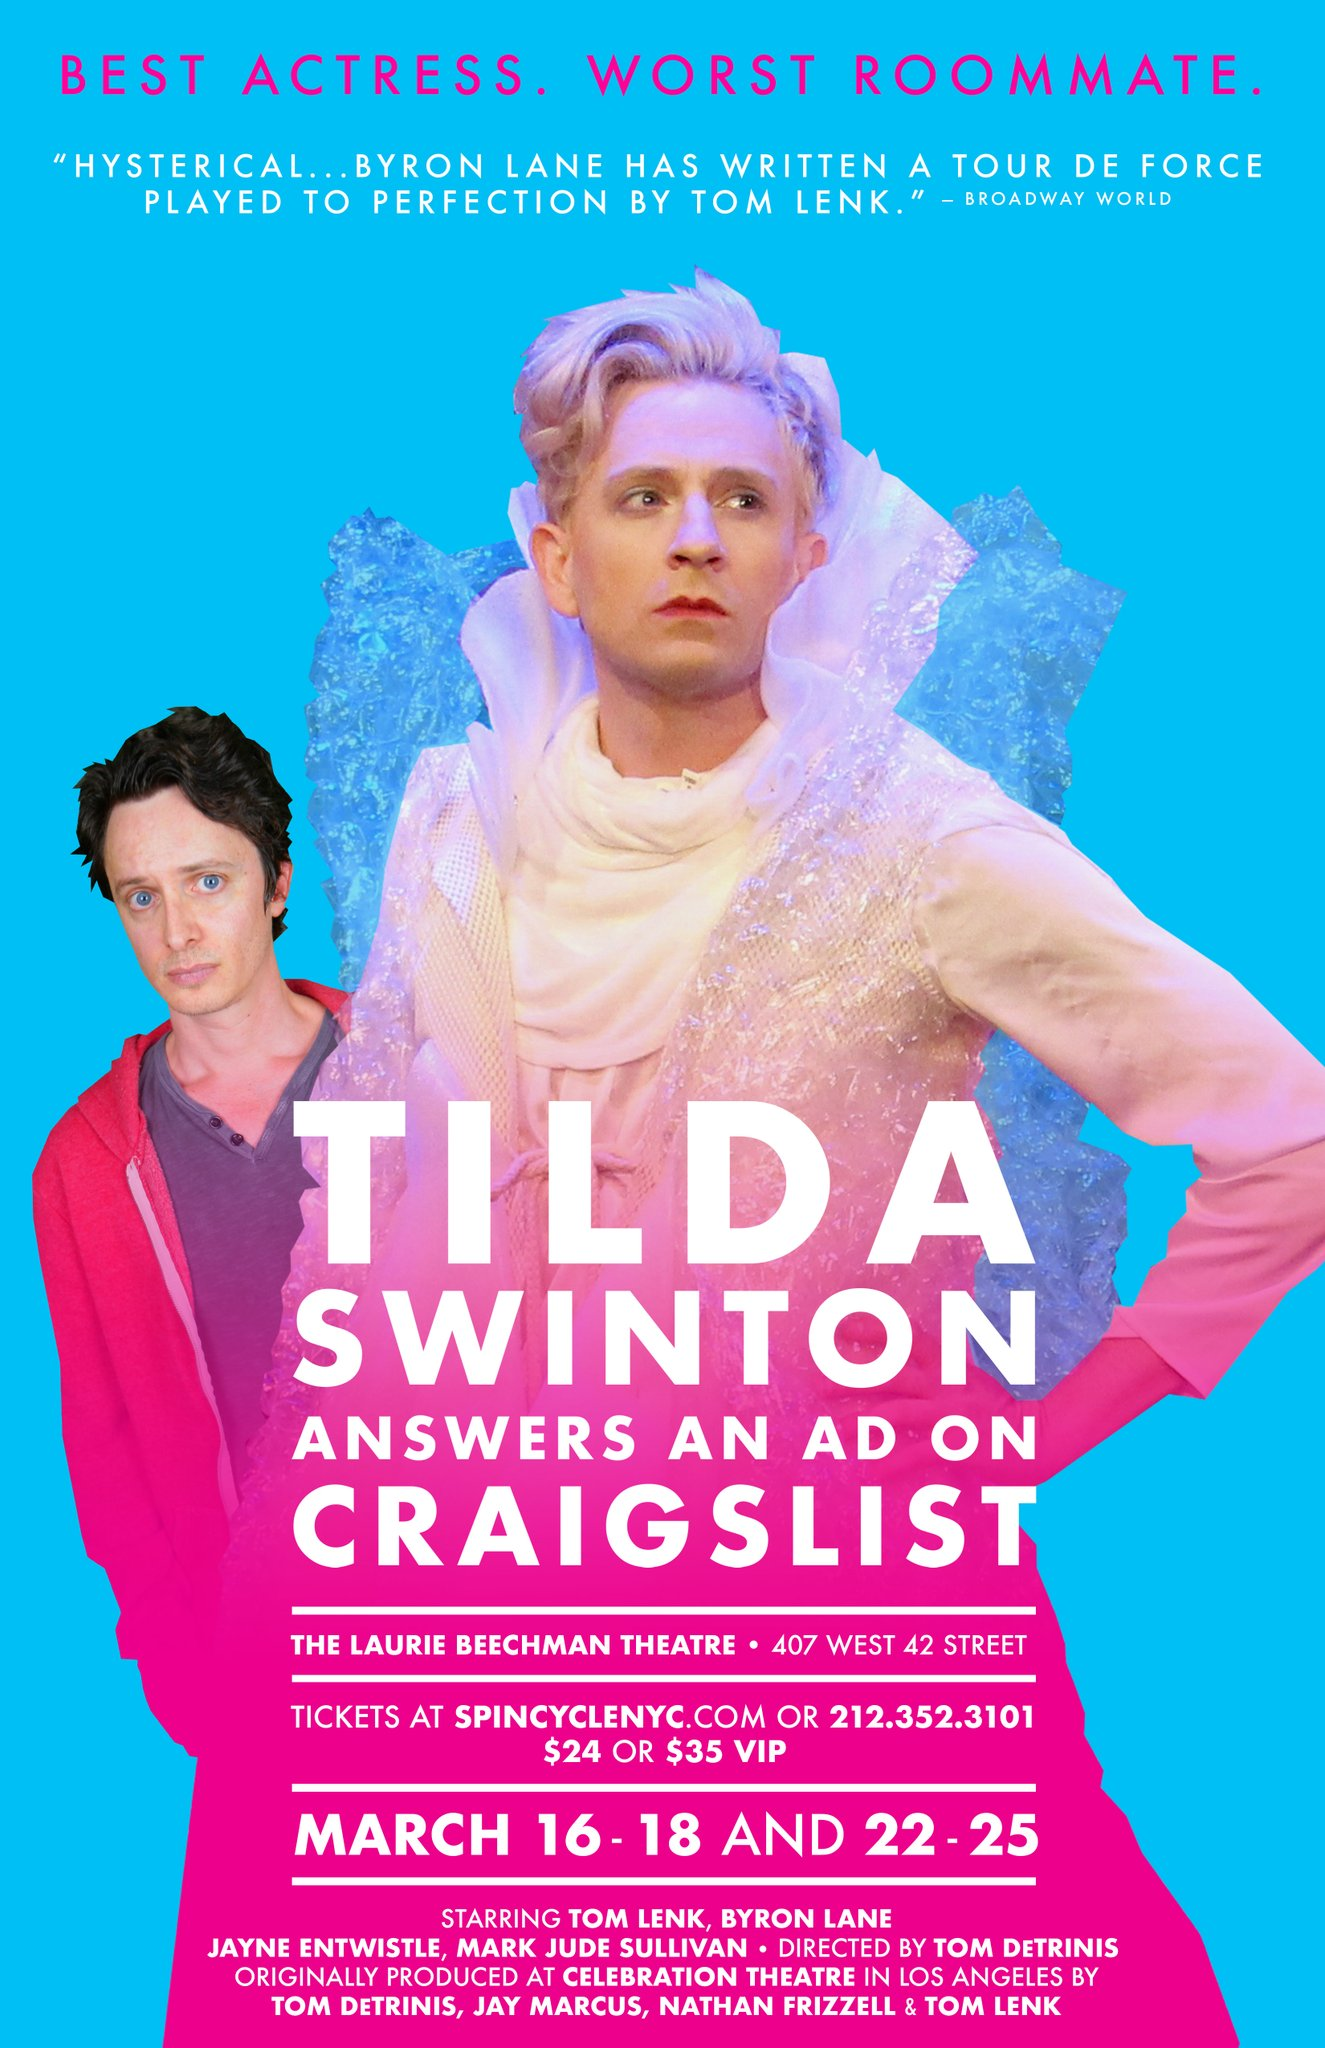 Byron Lane (left) and Tom Lenk (right) in  Tilda Swinton Answers An Ad On Craigslist